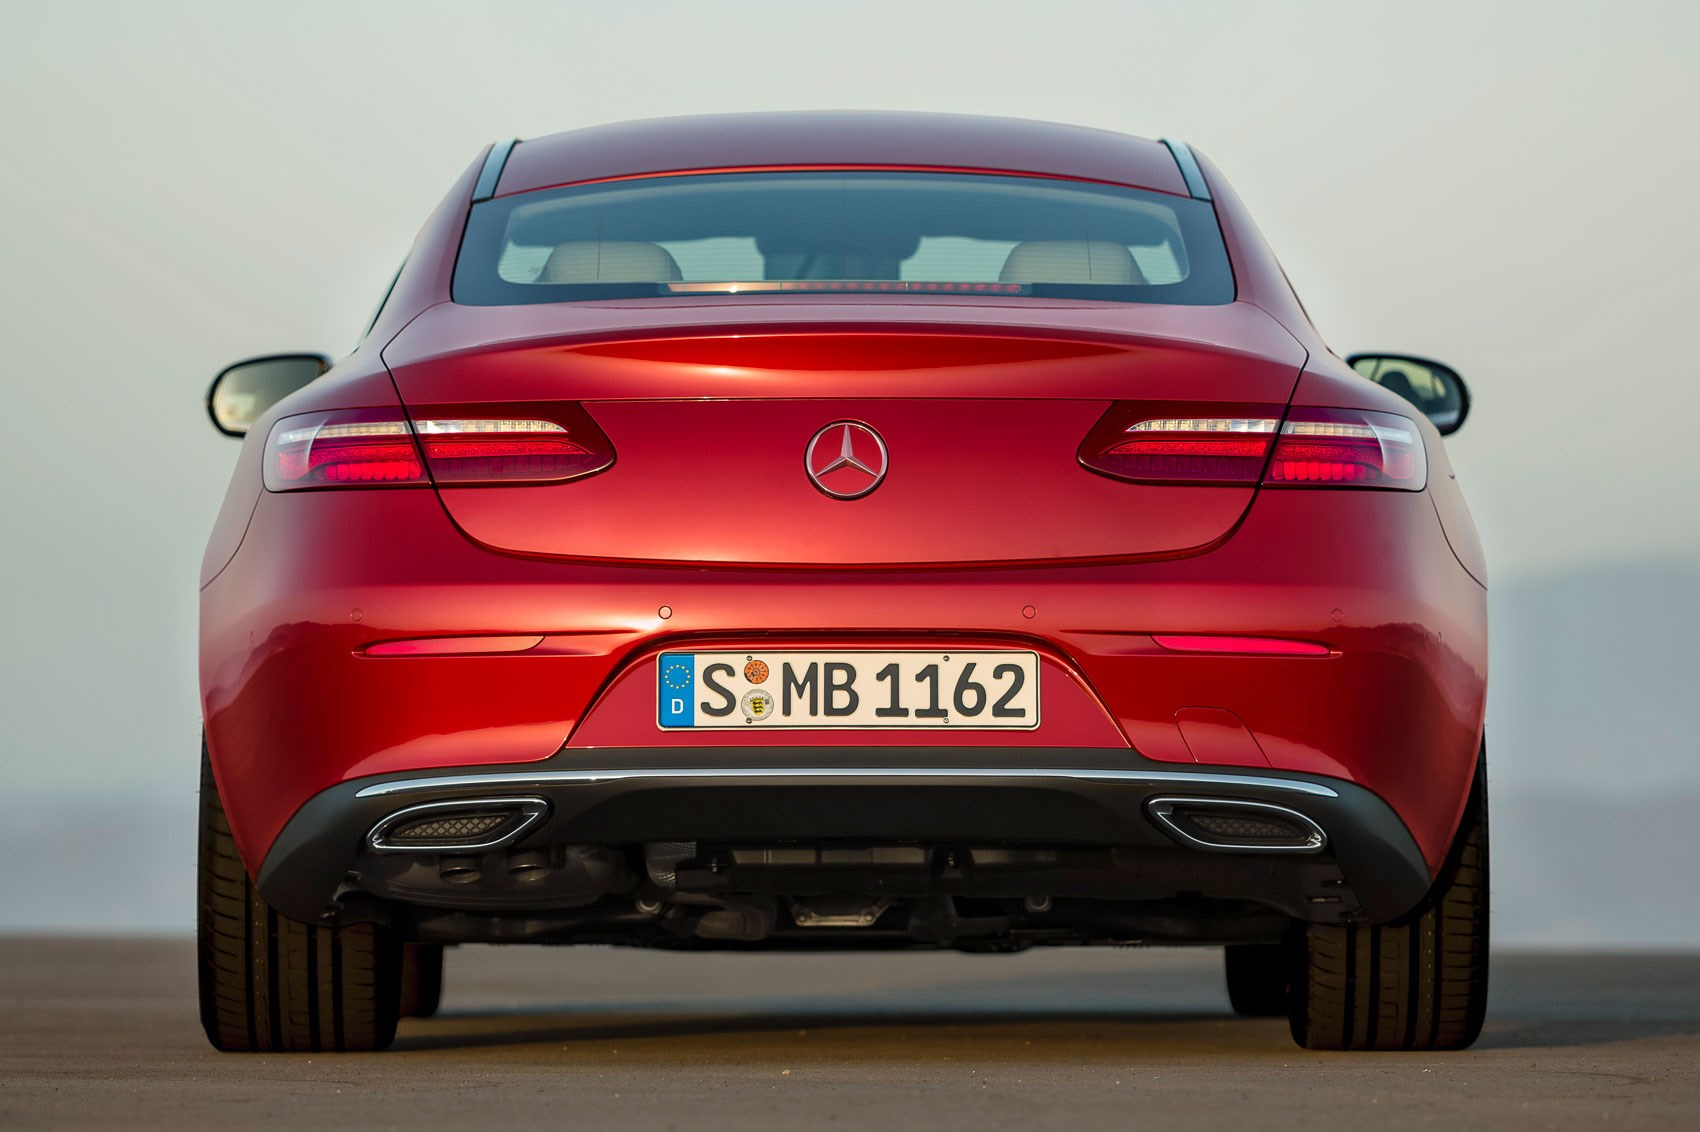 Mercedes E-class: AMG 53 hybrid engines arrive this summer | CAR